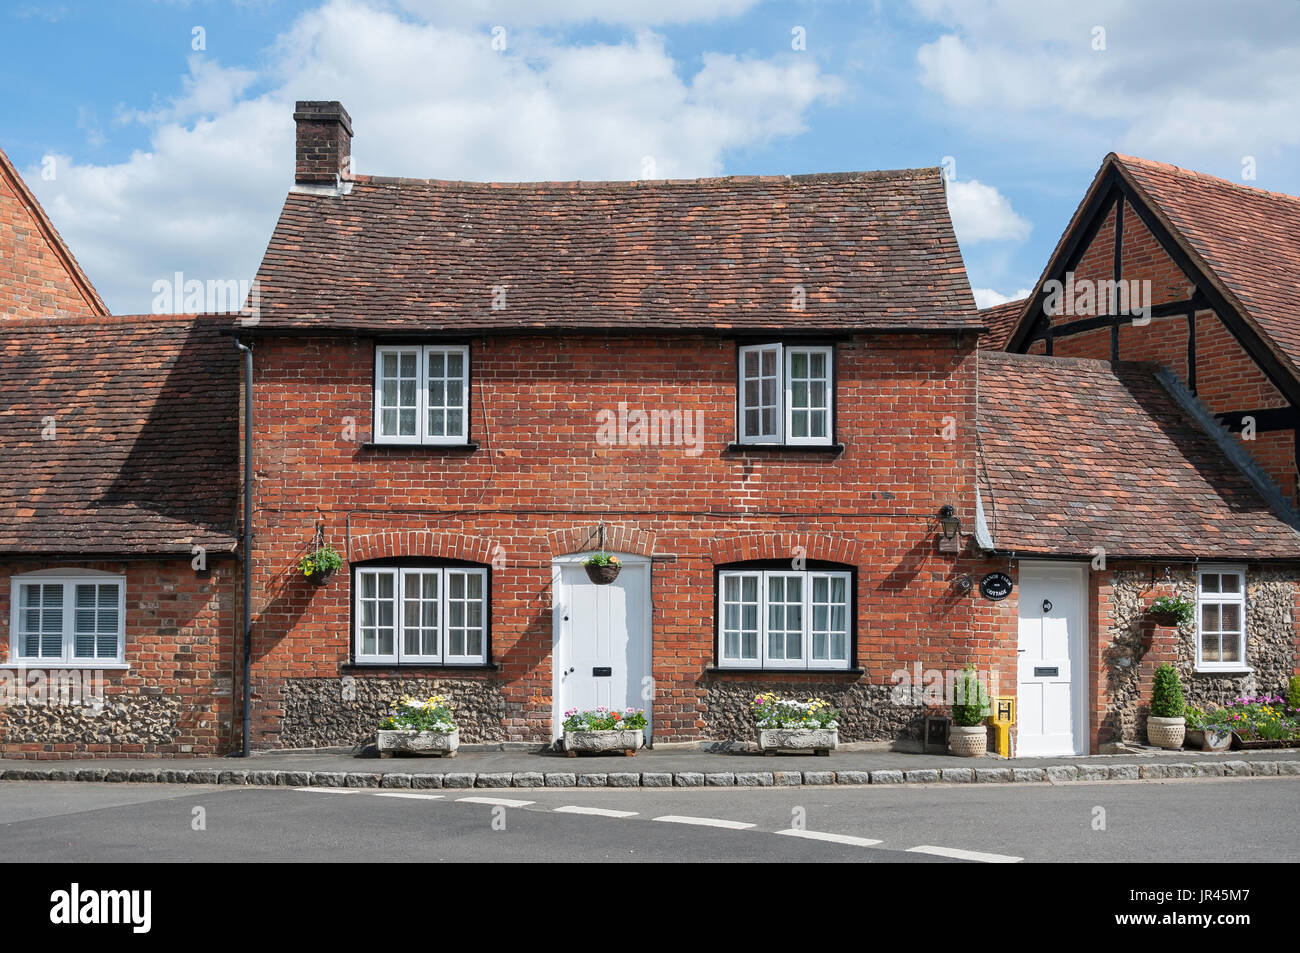 Small period cottage, Highmore Cottages, Little Missenden, Buckinghamshire, England, United Kingdom - Stock Image